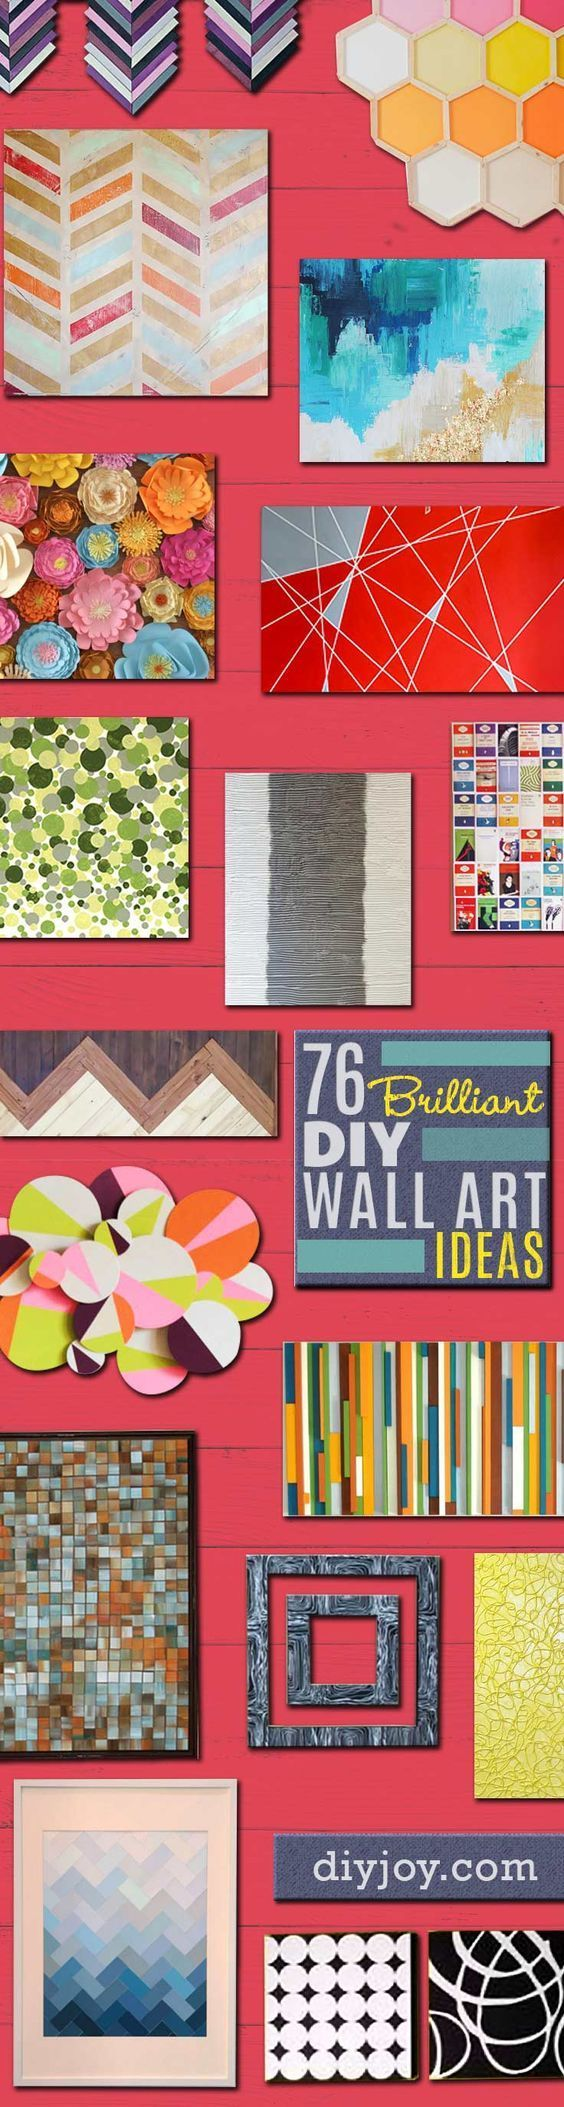 Diy wall art ideas and do it yourself wall decor for living room diy wall art ideas and do it yourself wall decor for living room bedroom bathroom teen rooms modern abstract rustic simple easy and affordable wall solutioingenieria Gallery